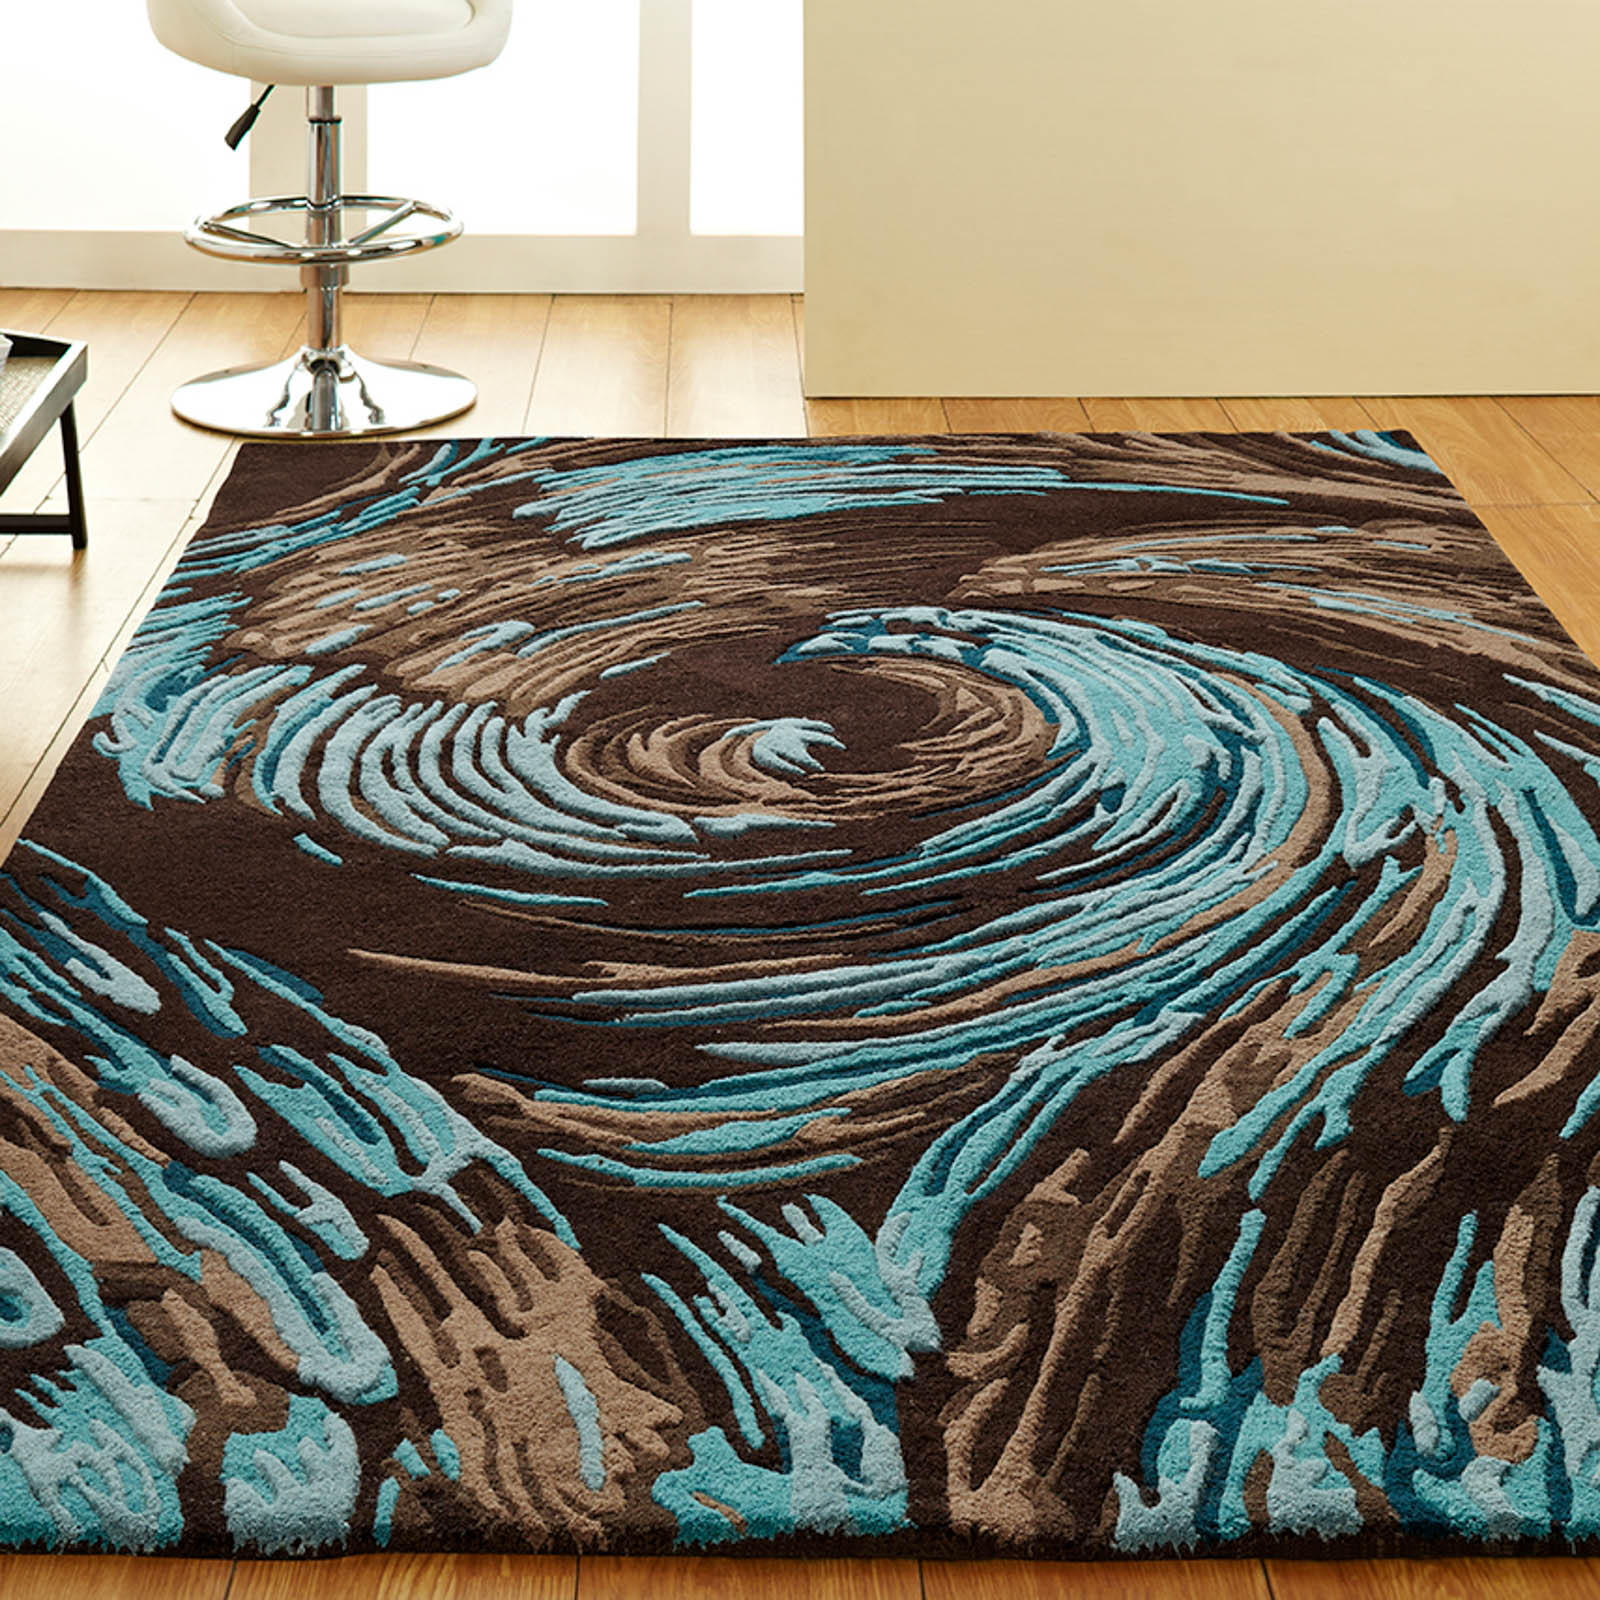 Unique Evolution Rugs in Chocolate Blue